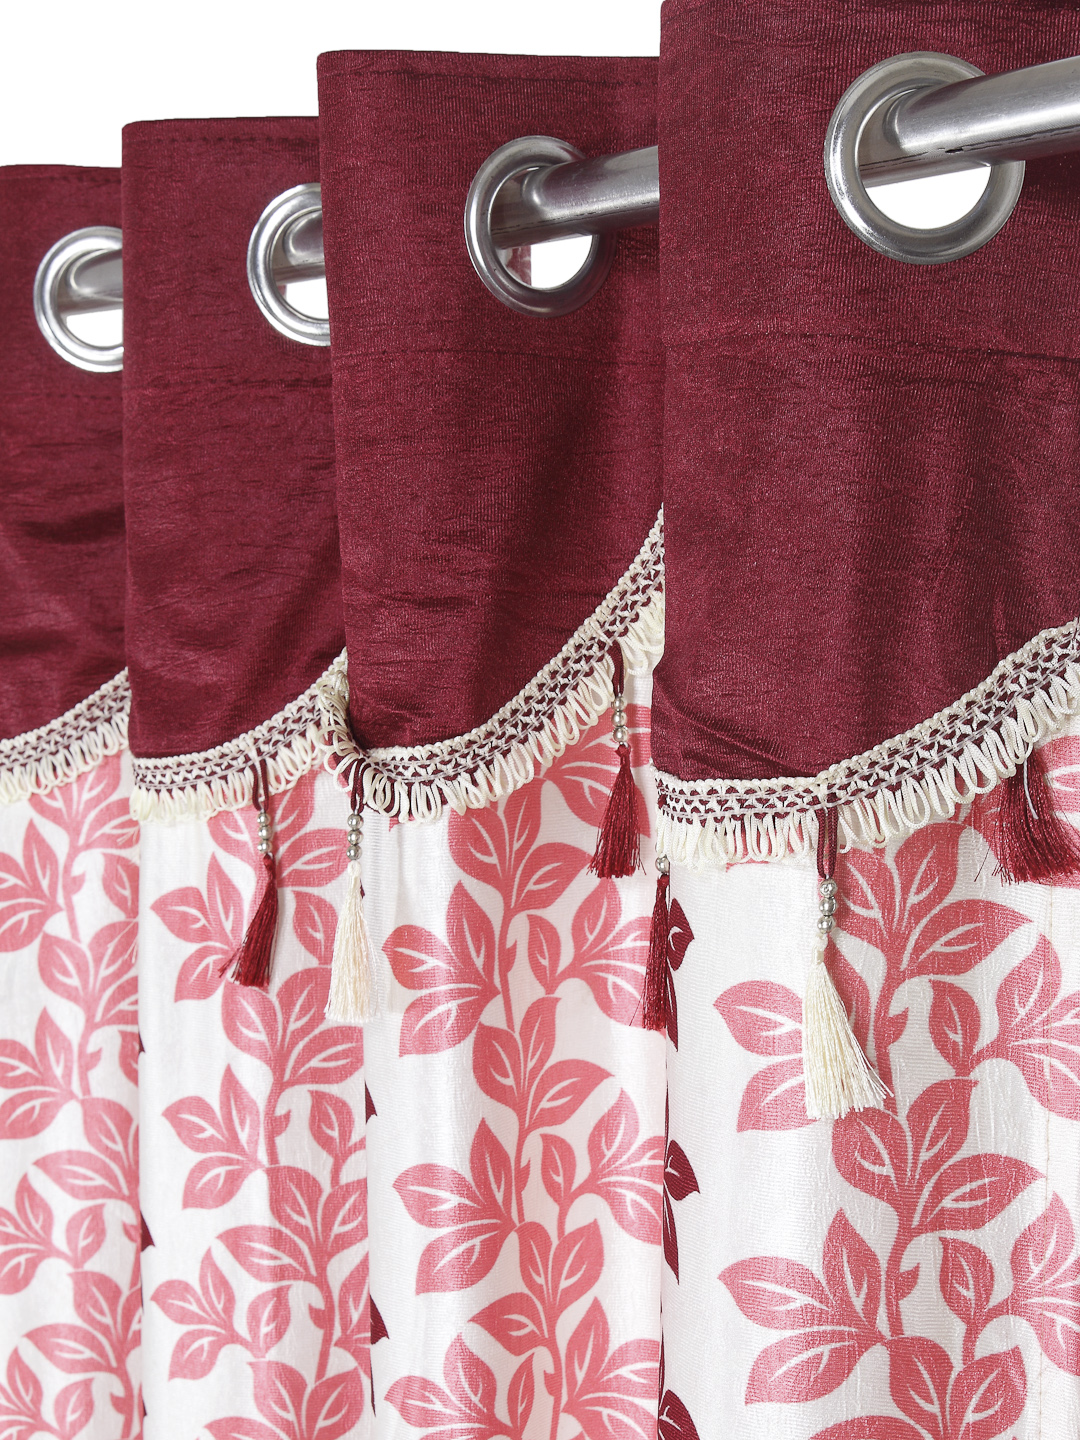 Cortina - Pack of 2 Decorative, Fancy, Eyelet Window Curtain set (150 x 115 cm), All over Leafy pattern, Maroon, Fringe and tassle detail